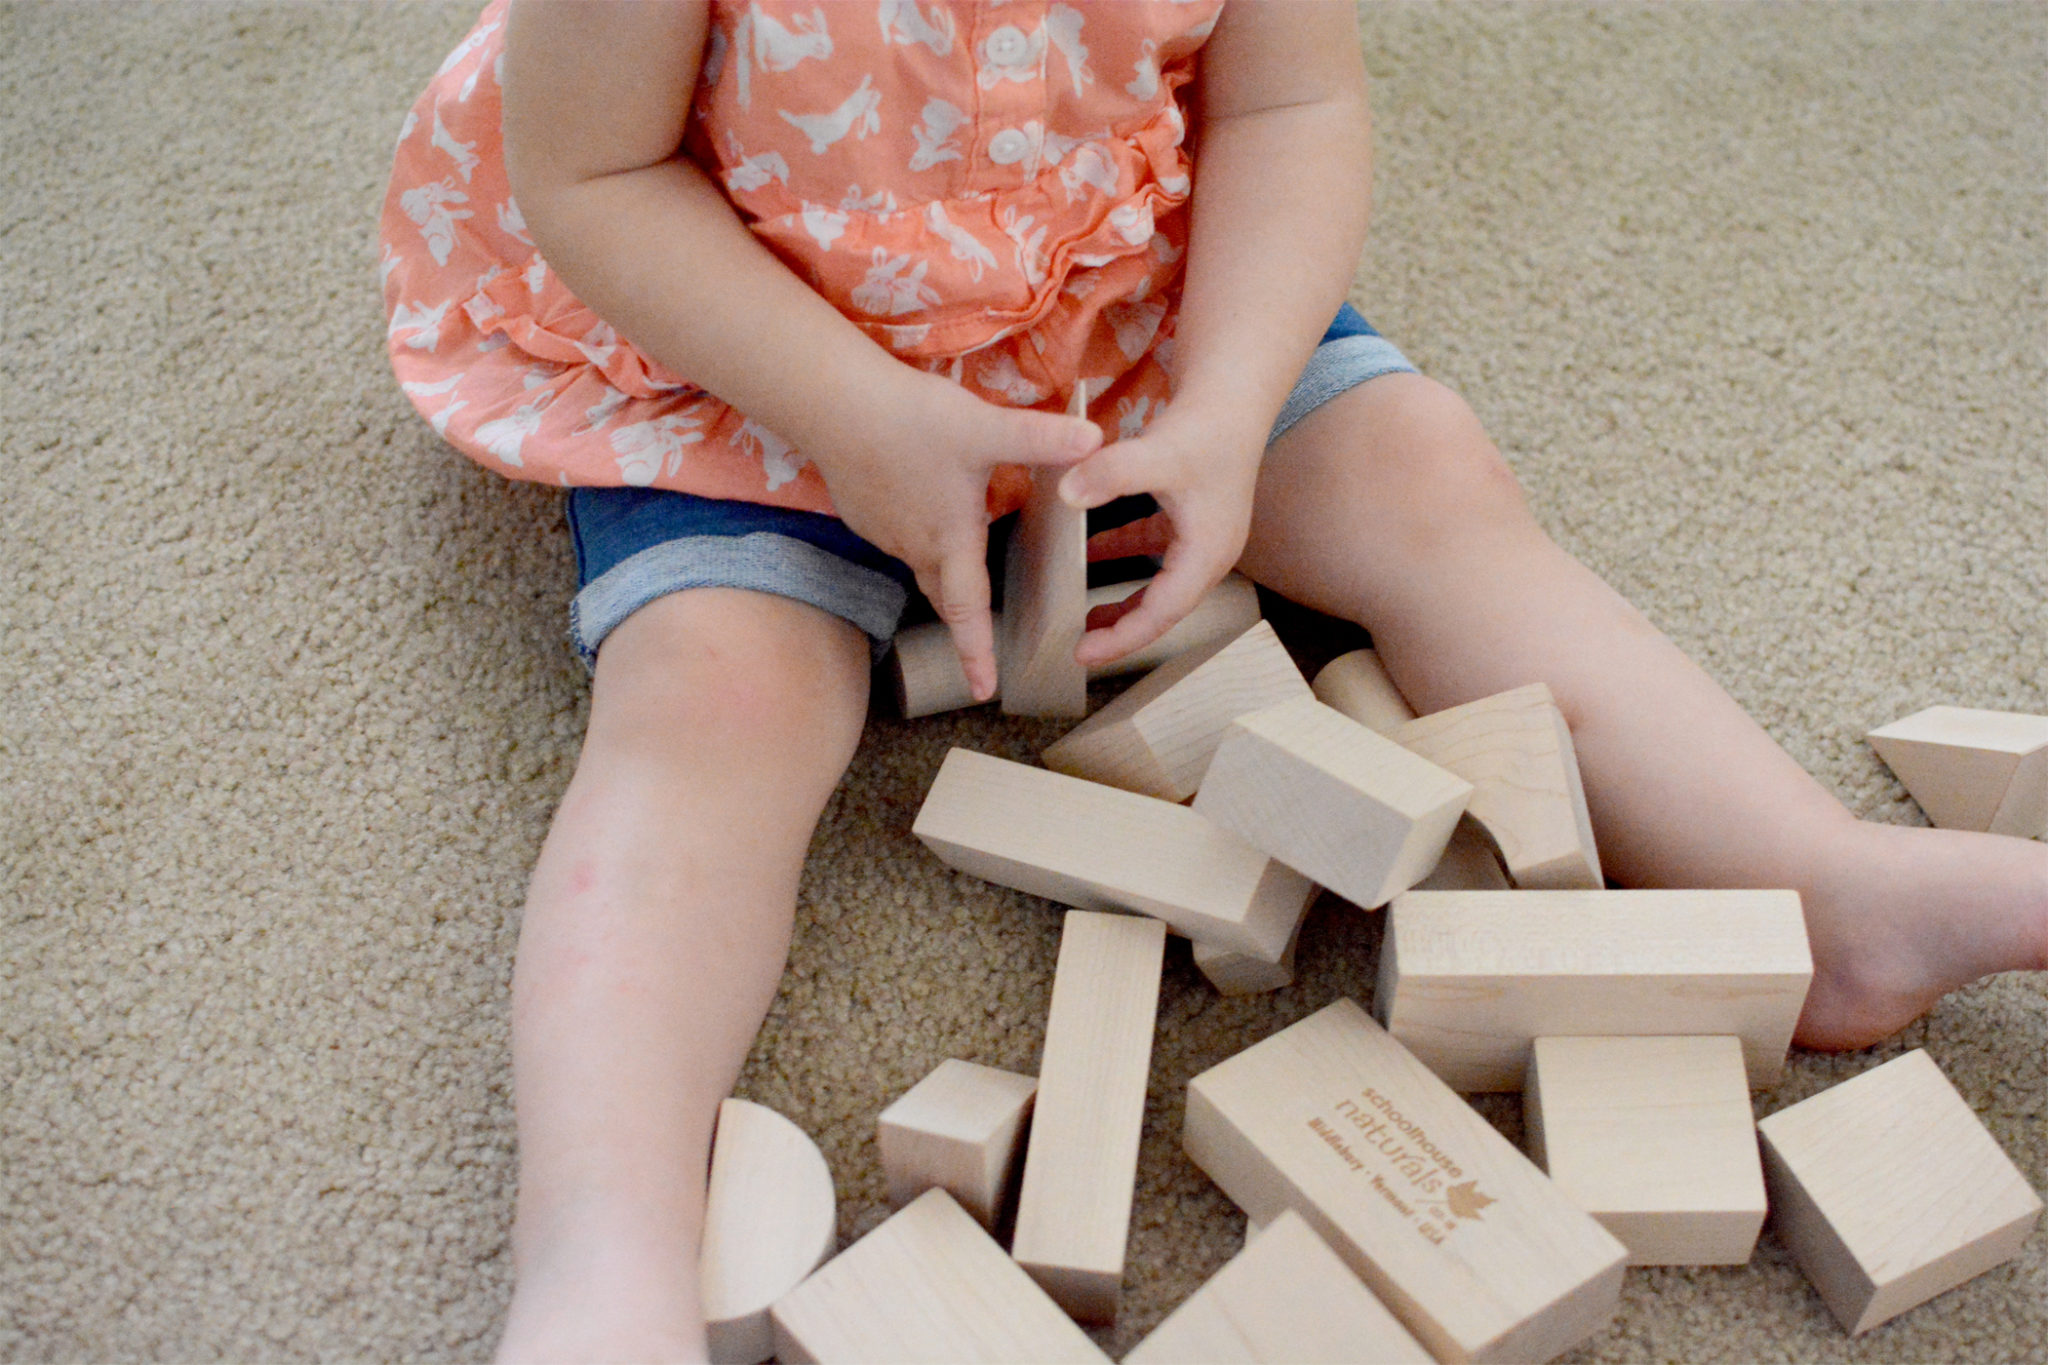 A baby, sitting on a carpeted floor, playing with building blocks